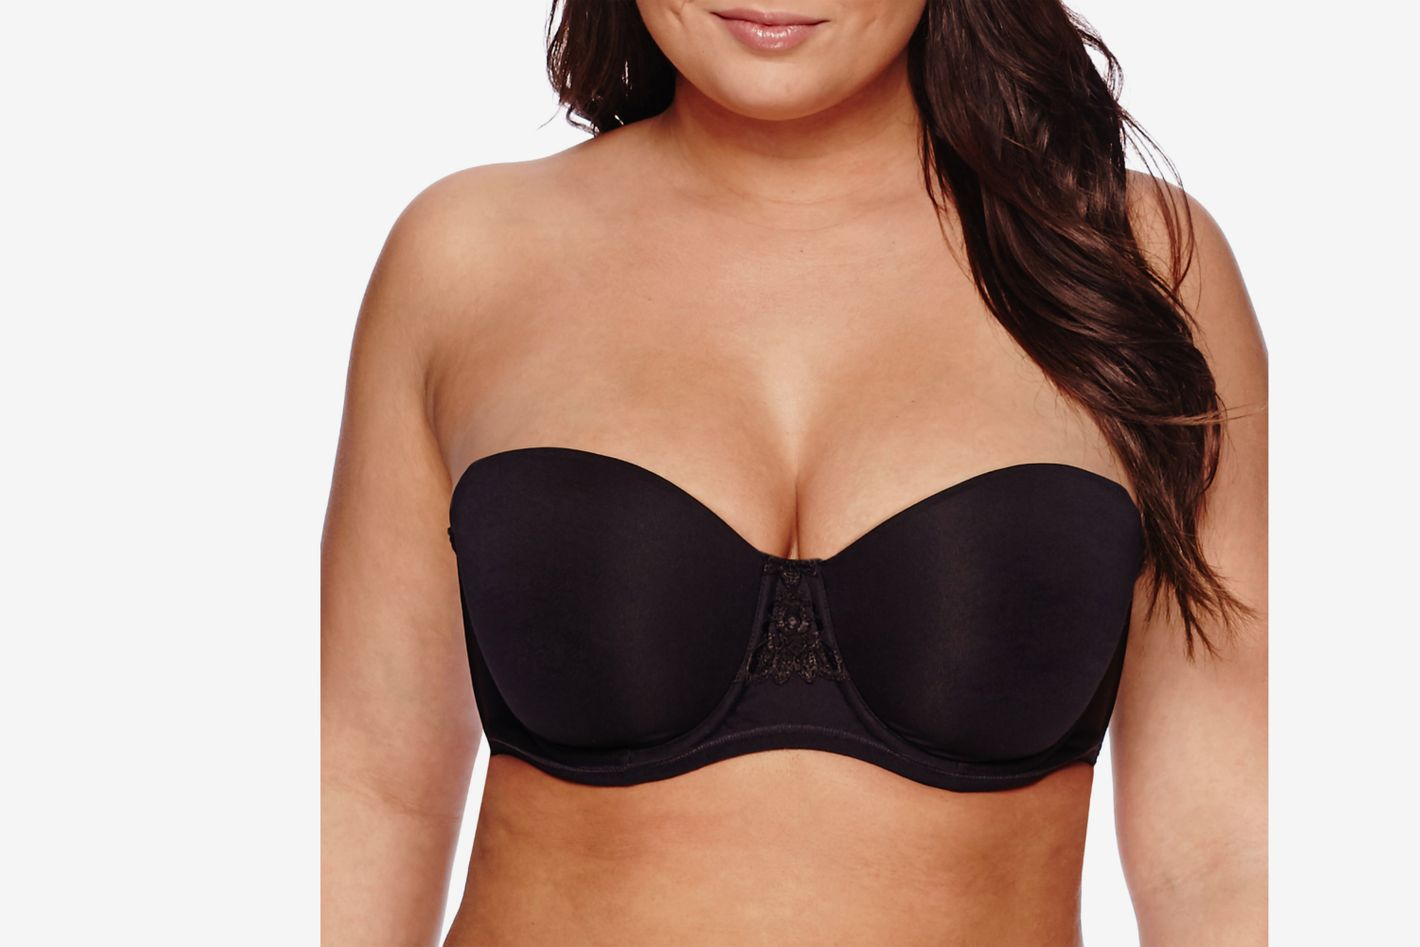 44464c7a4 23 Best Strapless Bras You Can Buy in 2018